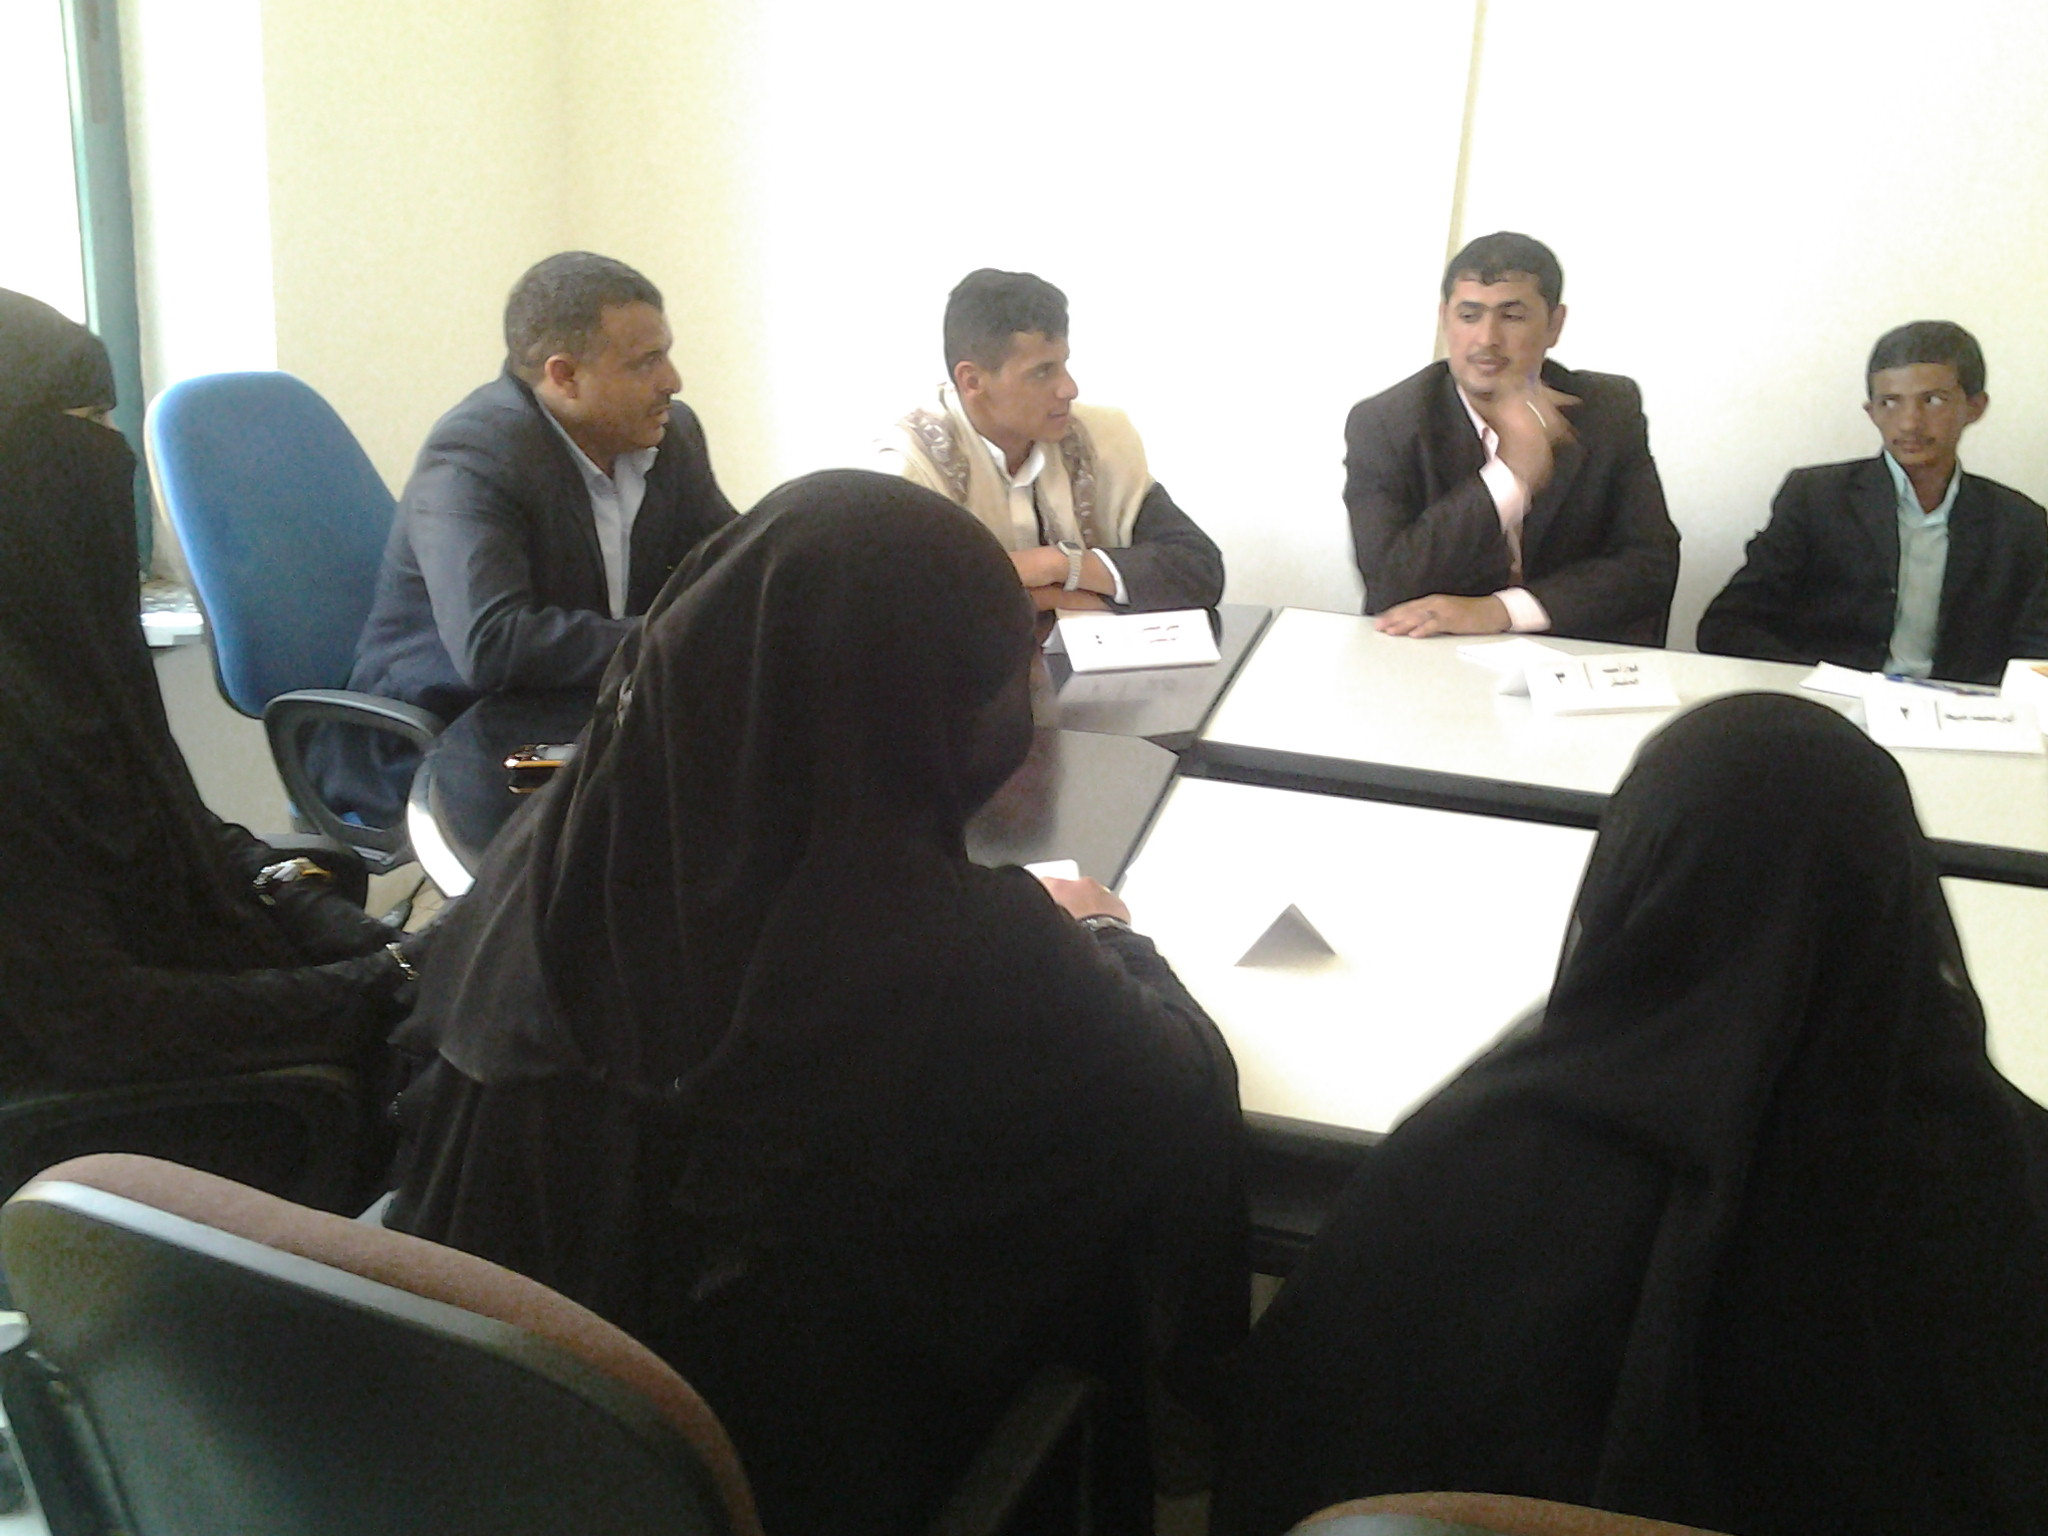 Amran Focus Group - Political & Economic Empowerment of Women & Youth